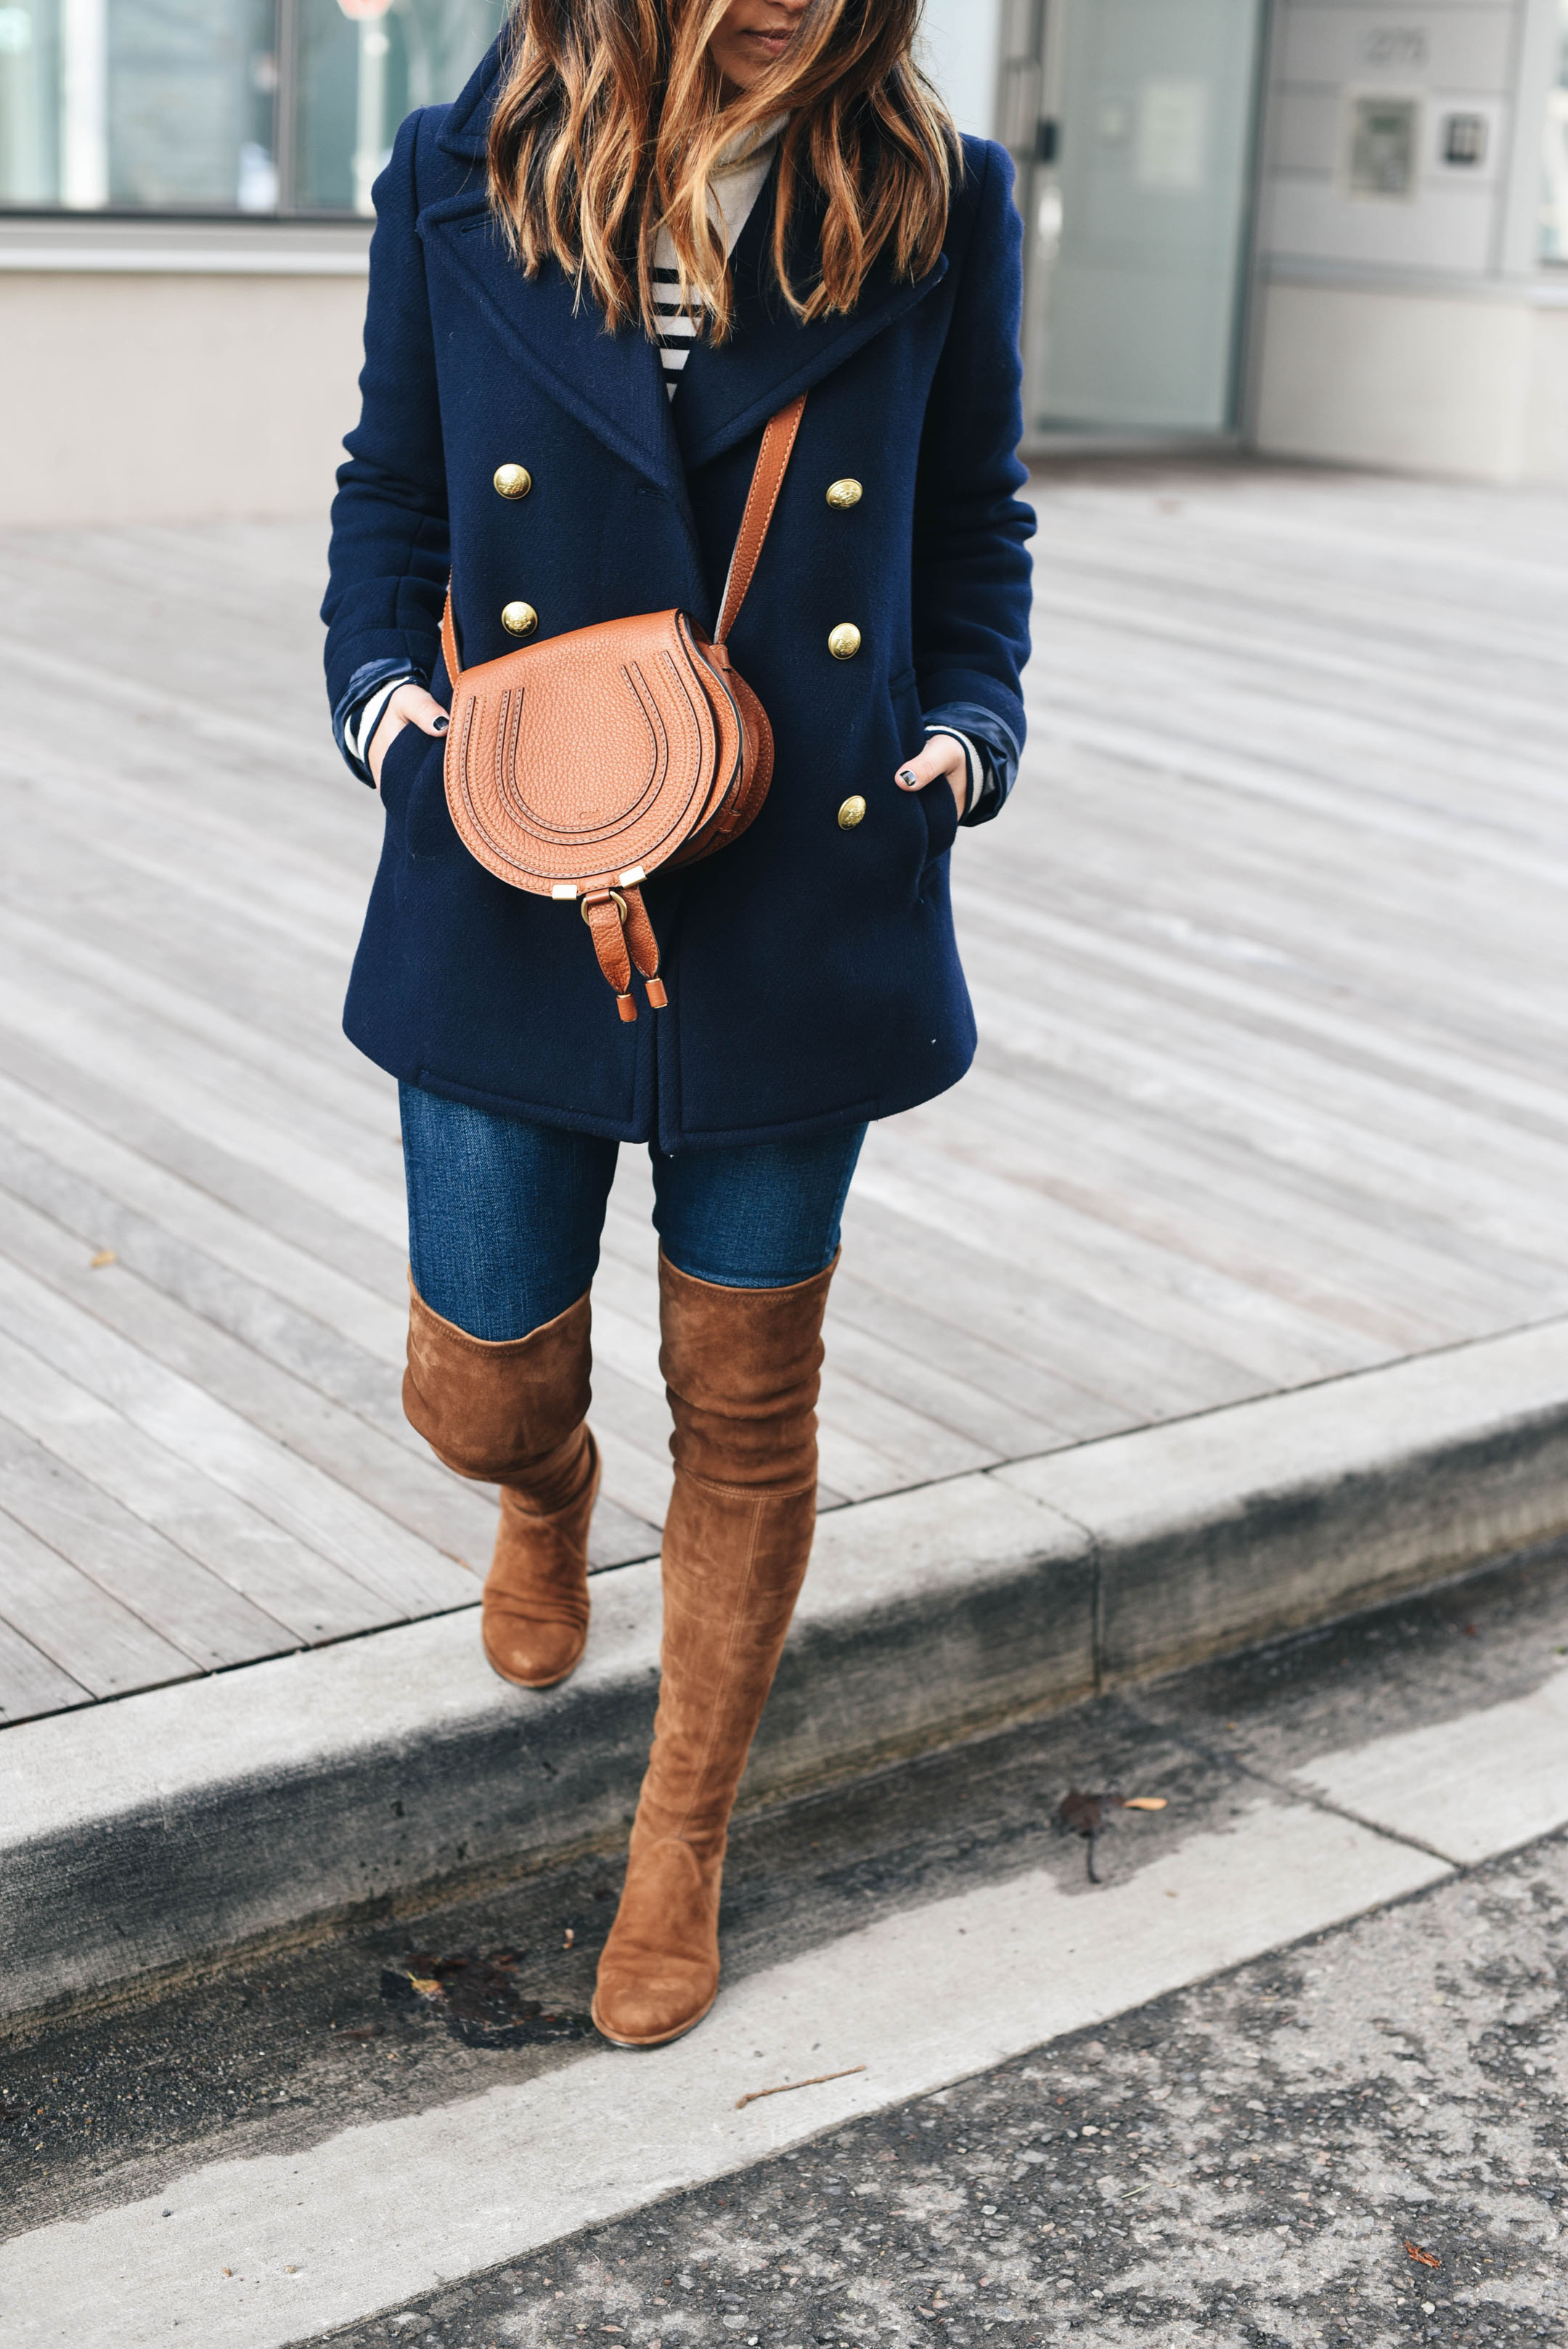 Stuart Weitzman cognac over the knee boots